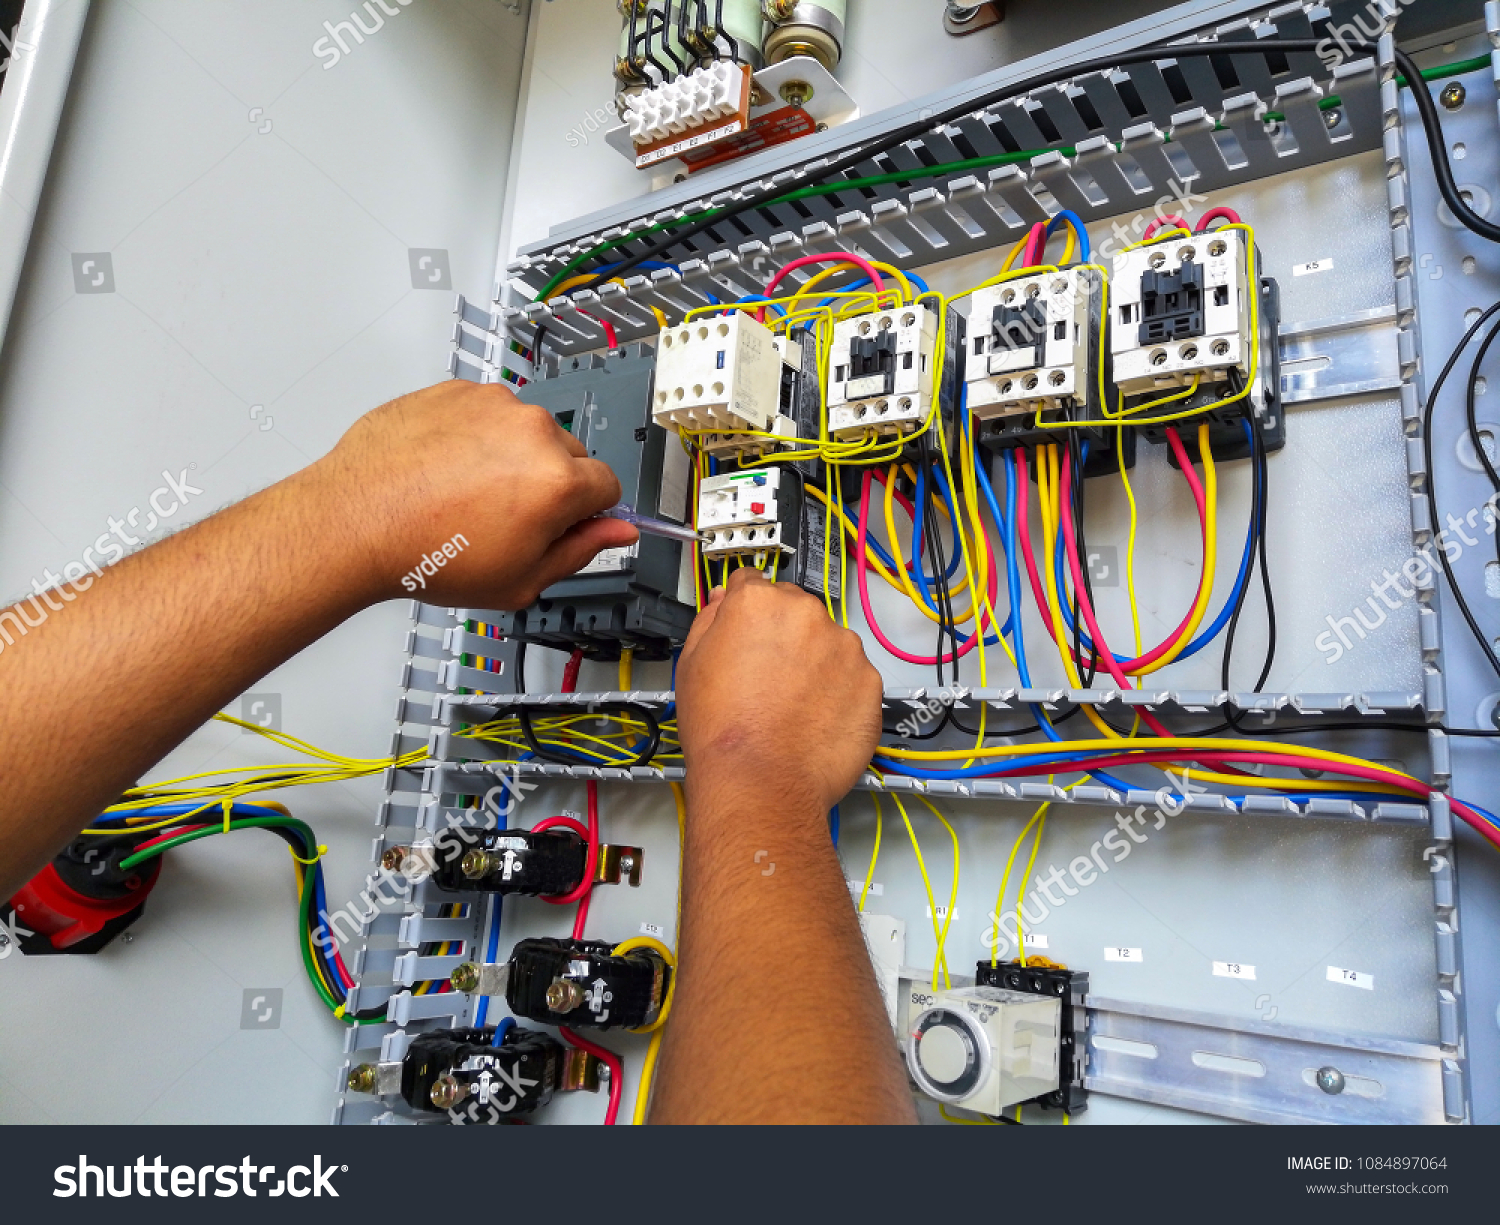 Electrical Motor Stater During Wiring Work Stock Photo (Edit ... on wiring contractors, clutch works, electronics works, floor works, painting works, fabrication works, pump works, motor works,